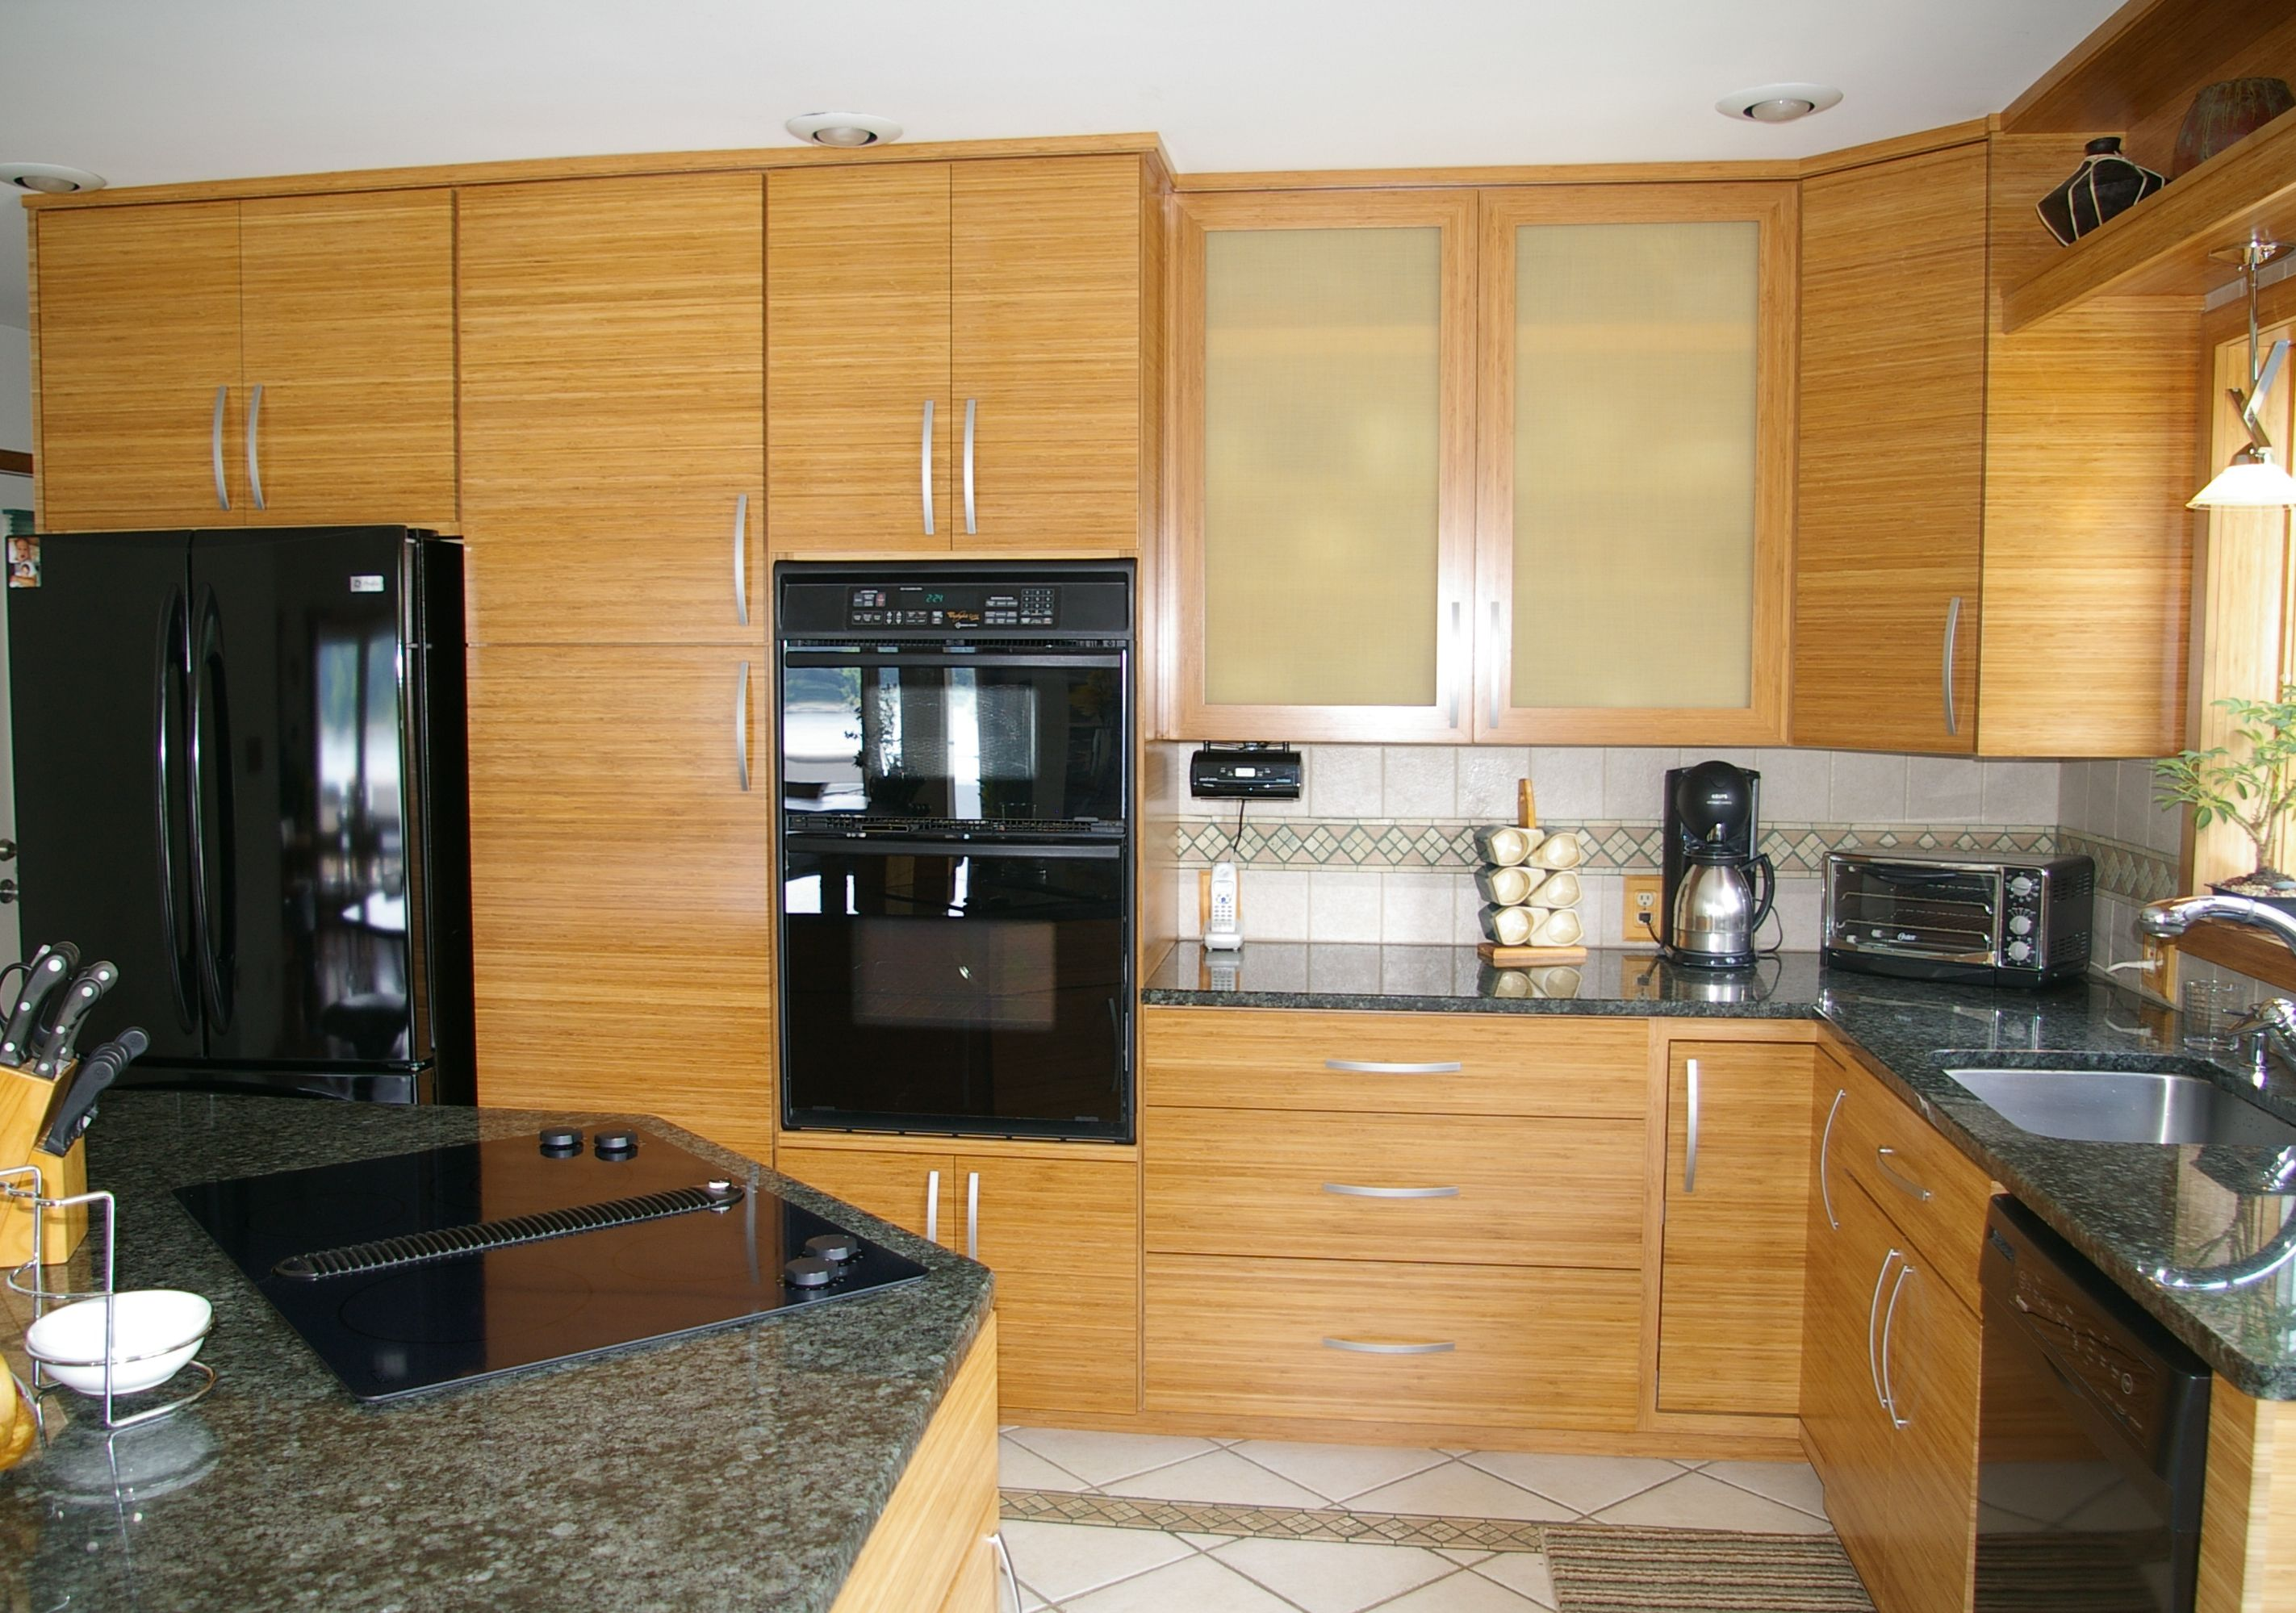 Bamboo Cabinets Love The Texture With Images Bamboo Kitchen Cabinets Kitchen Cabinets And Countertops